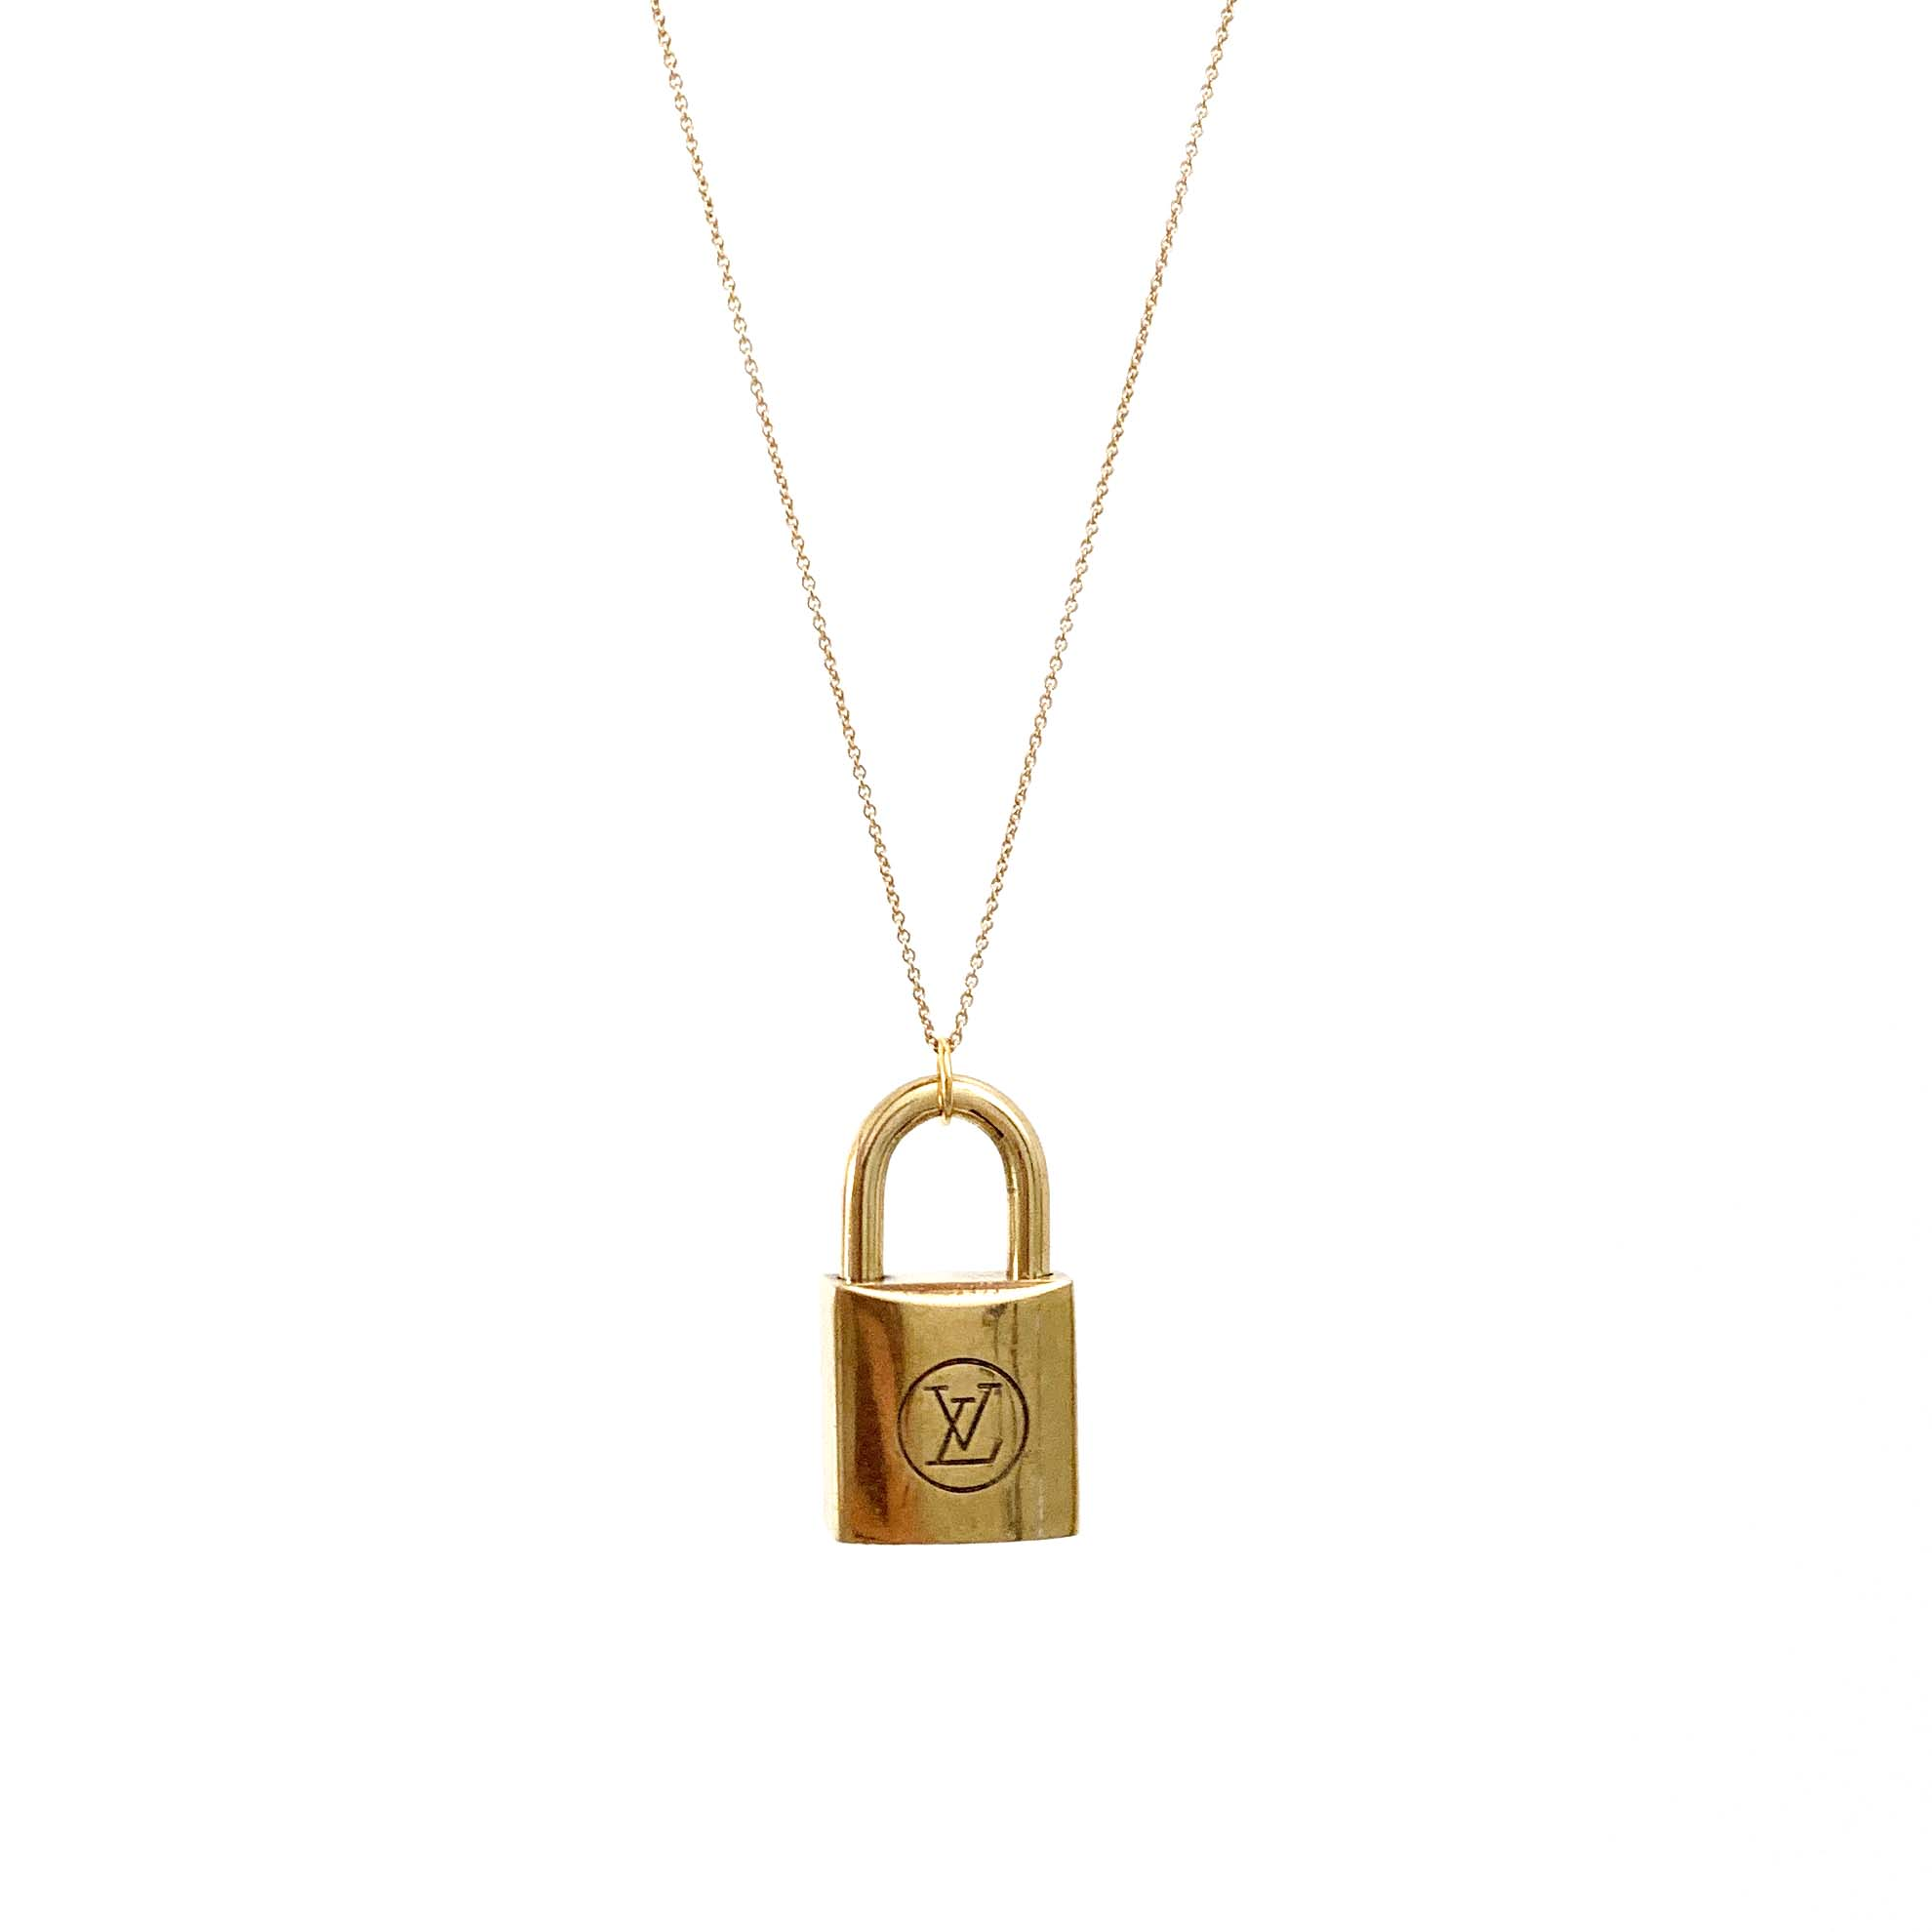 Gold-Plated Lock Necklace Special Edition